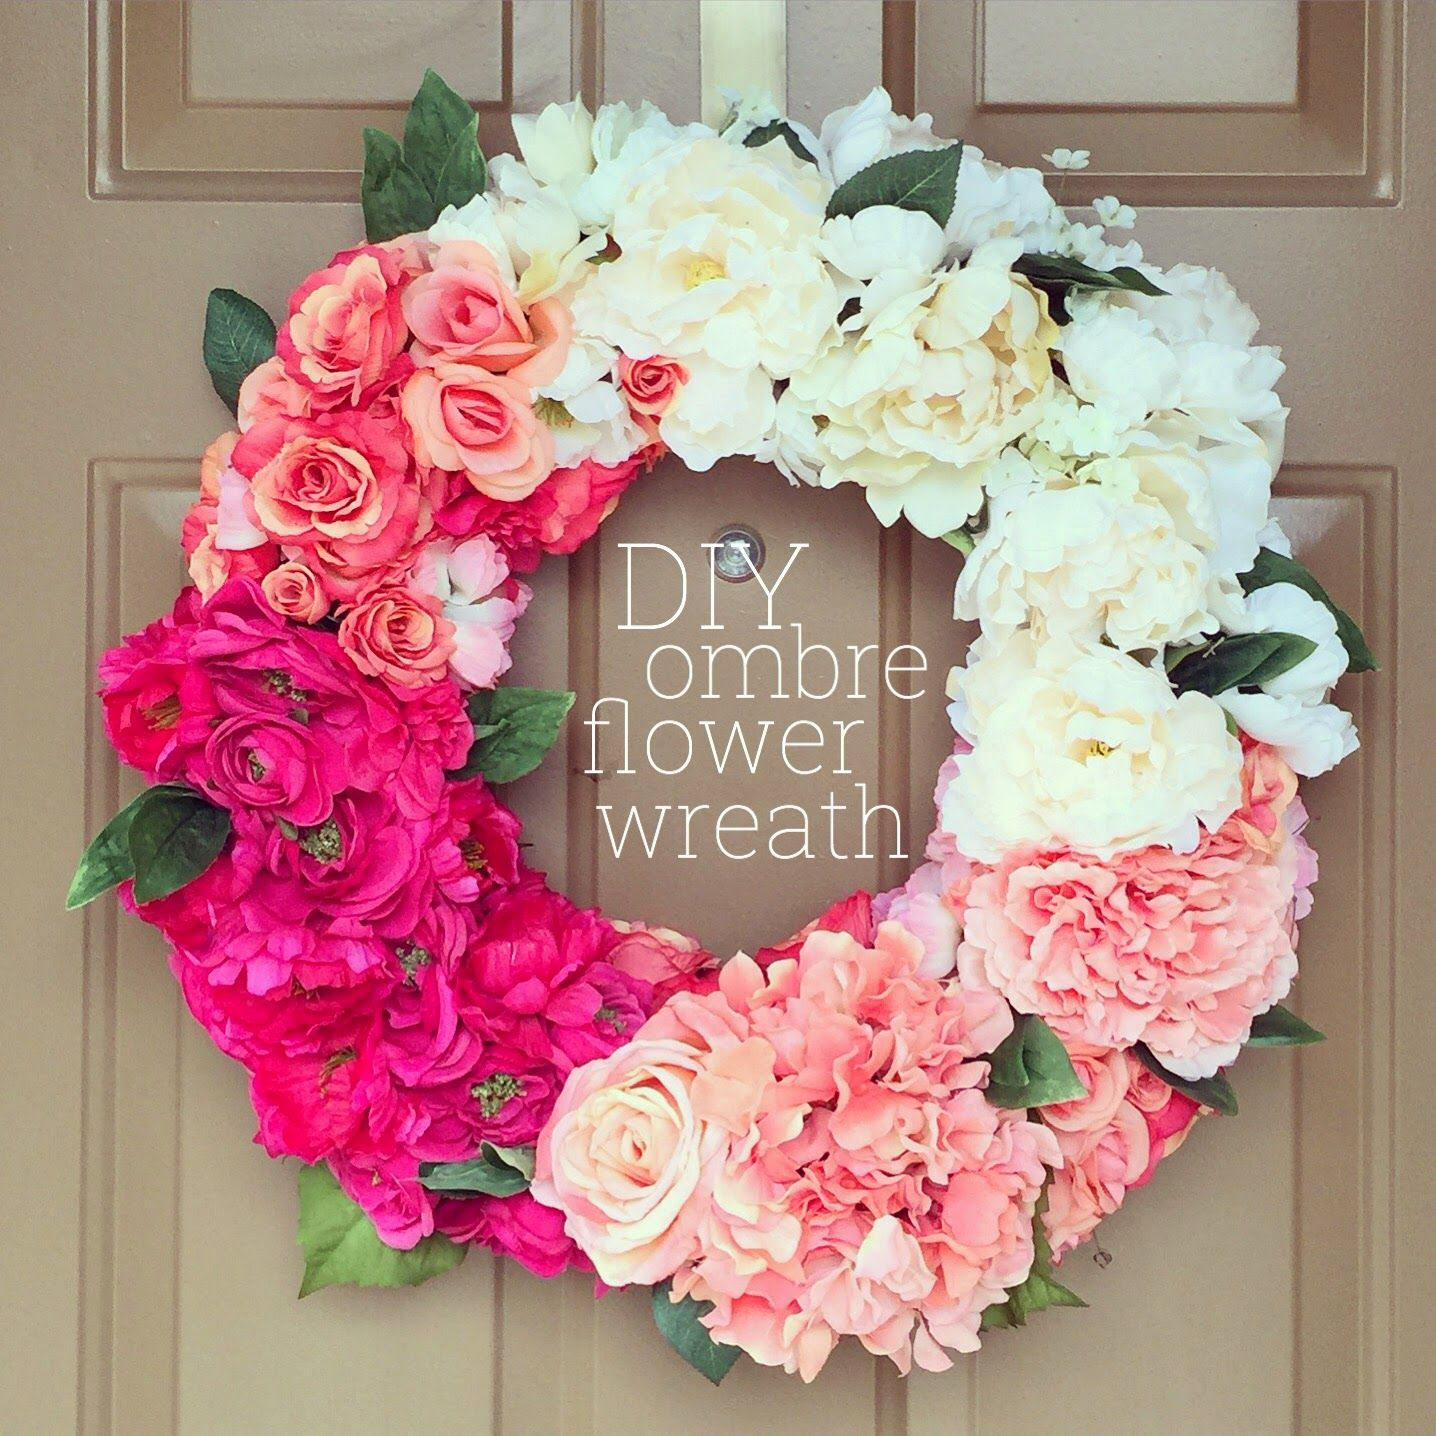 Diy Ombre Flower Wreath Lisa Loves John Diy And